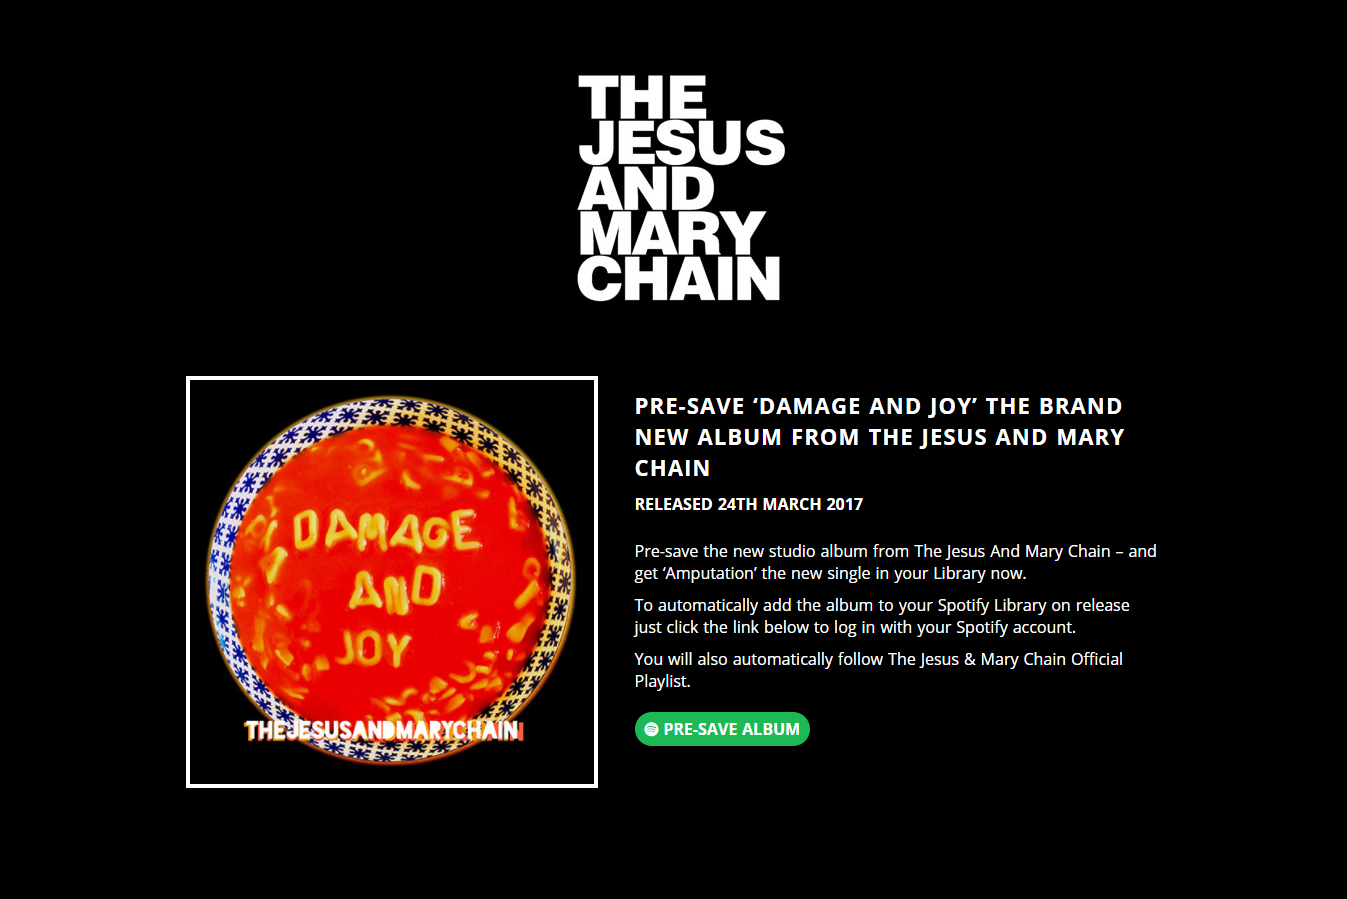 The Jesus and Mary Chain Pre-Save for Spotify, The Jesus and Mary Chain Presave For Spotify, The Jesus and Mary Chain Spotify Pre-Save